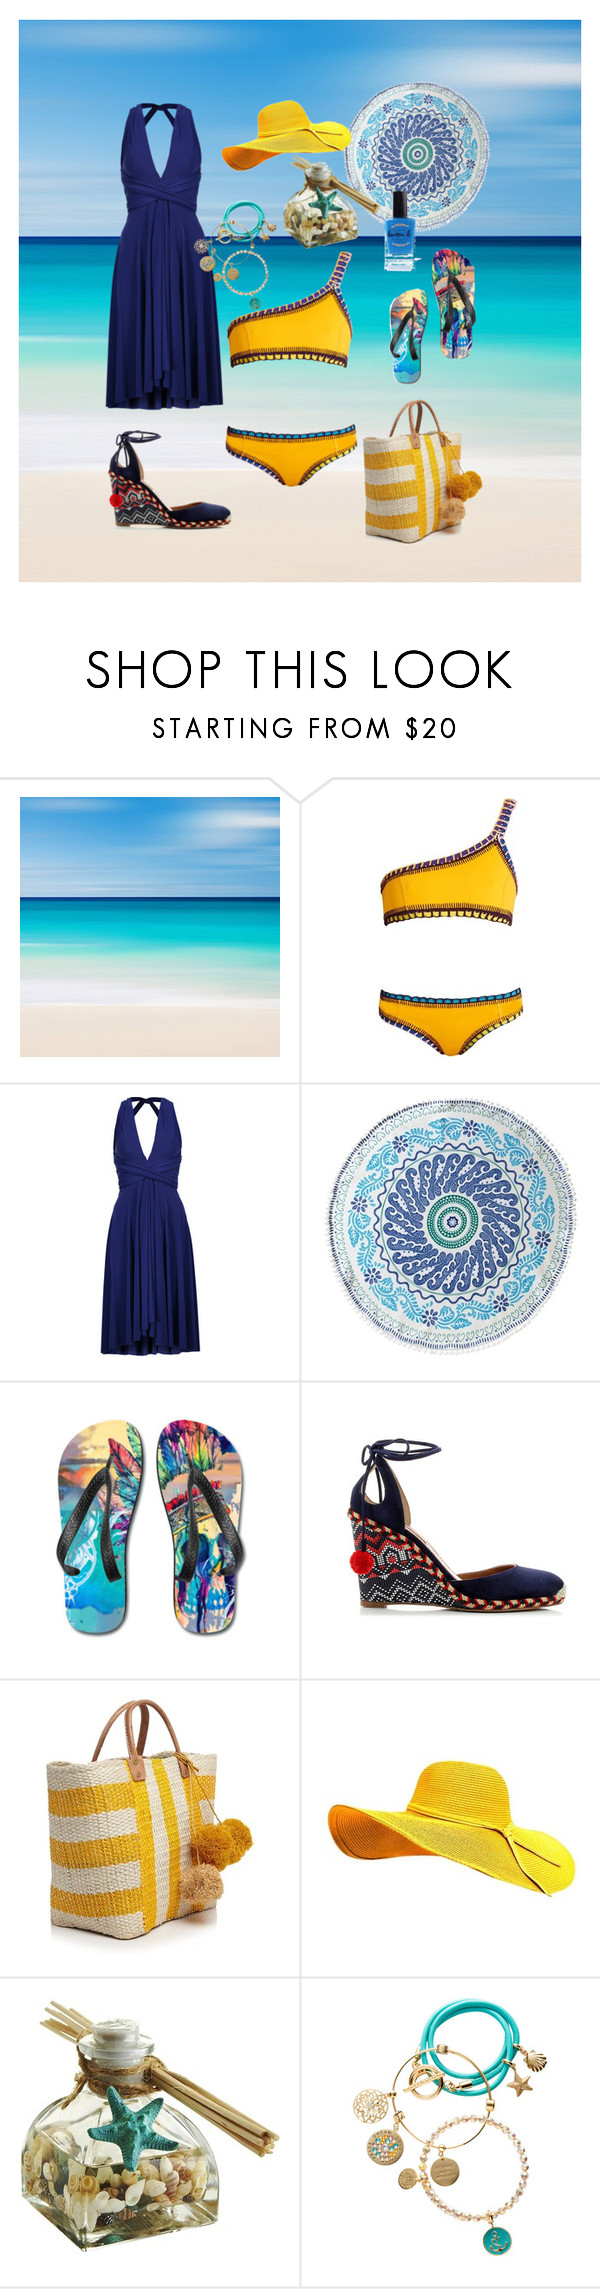 """Missing the Beach"" by ipekzsuel on Polyvore featuring kiini, Norma Kamali, John Robshaw, Aquazzura, Mar y Sol, Pier 1 Imports, nikki lissoni and Lauren B. Beauty"